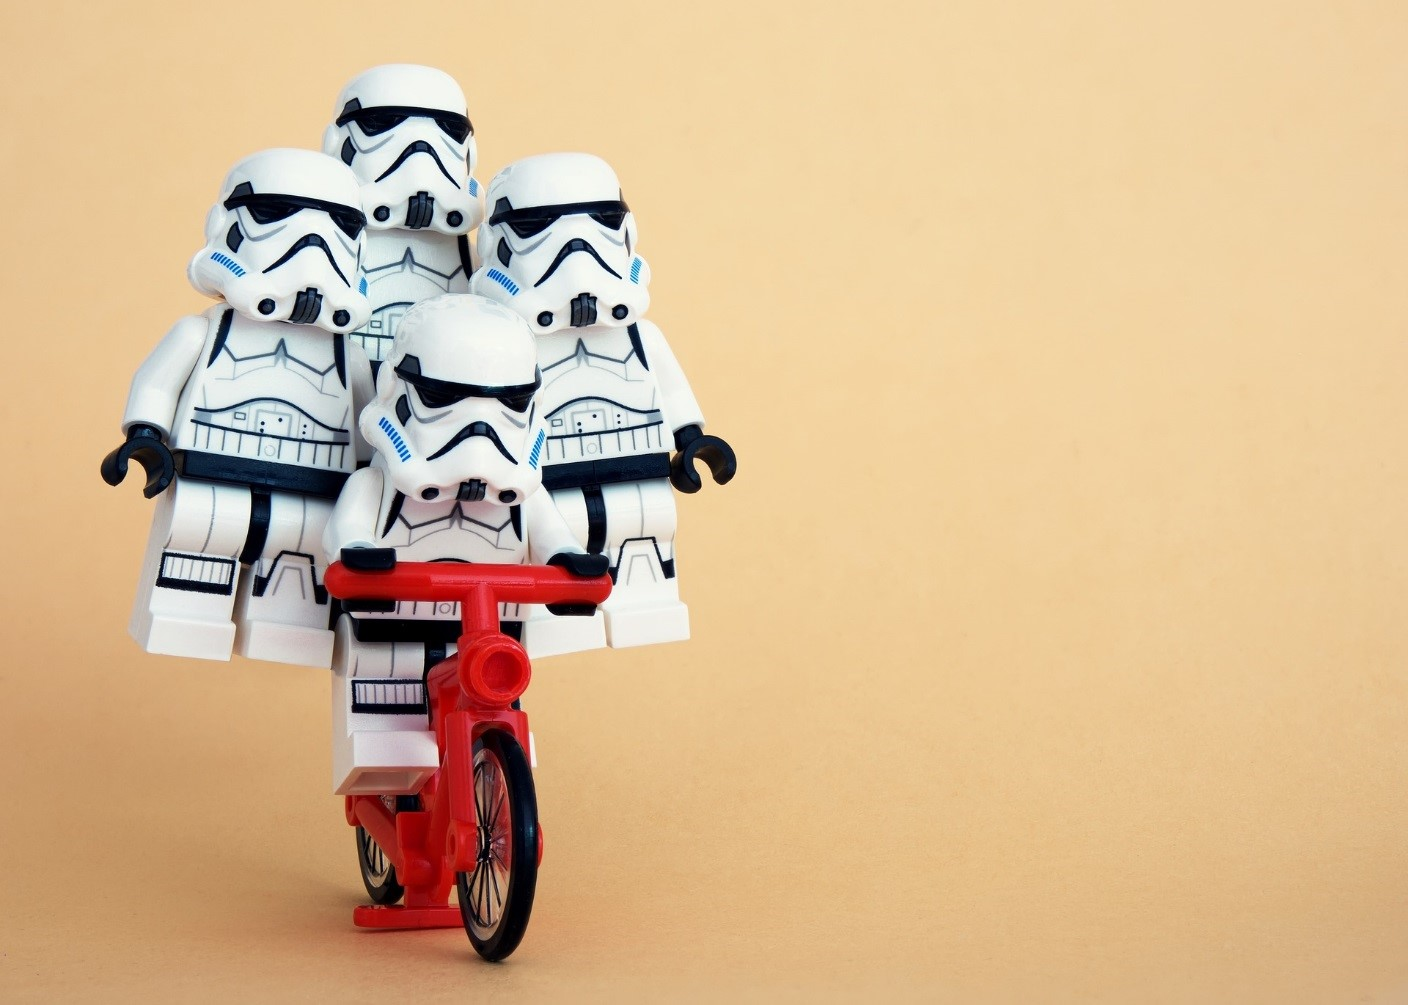 Star Wars Stormtroopers on a Bike